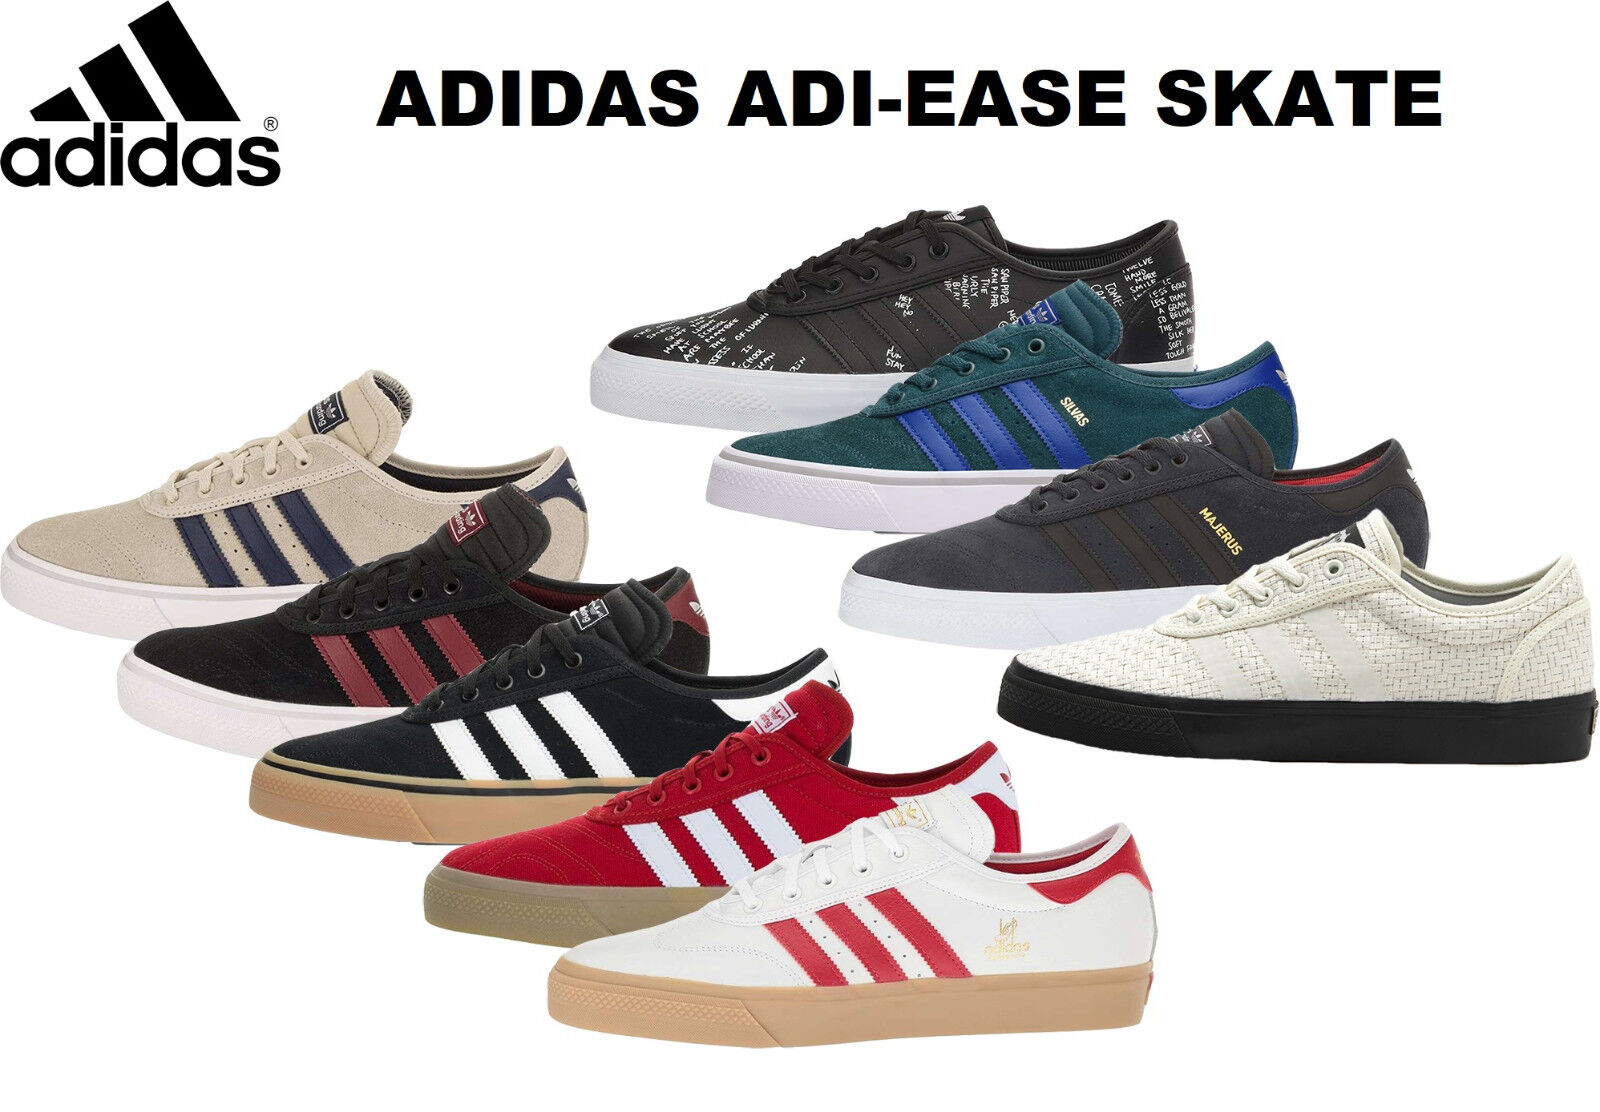 Adidas ADI EASE PREMIERE ADV Skate Shoes Sneakers NEW Seasonal price cuts, discount benefits